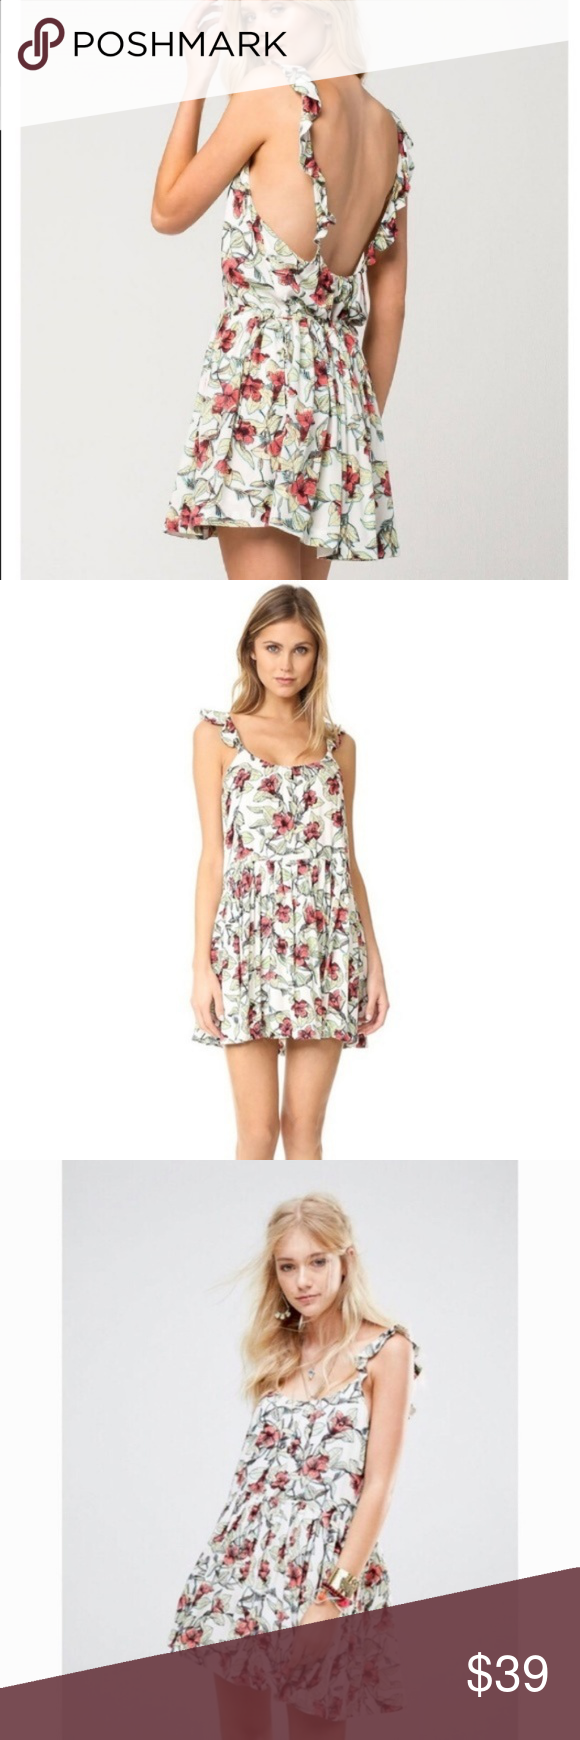 c46a8d31791d NWT Free People Dear You White Floral Dress Free People Dear You floral  mini-dress. - NWT! White w  pink and green flower print. Size  Large Free  People ...